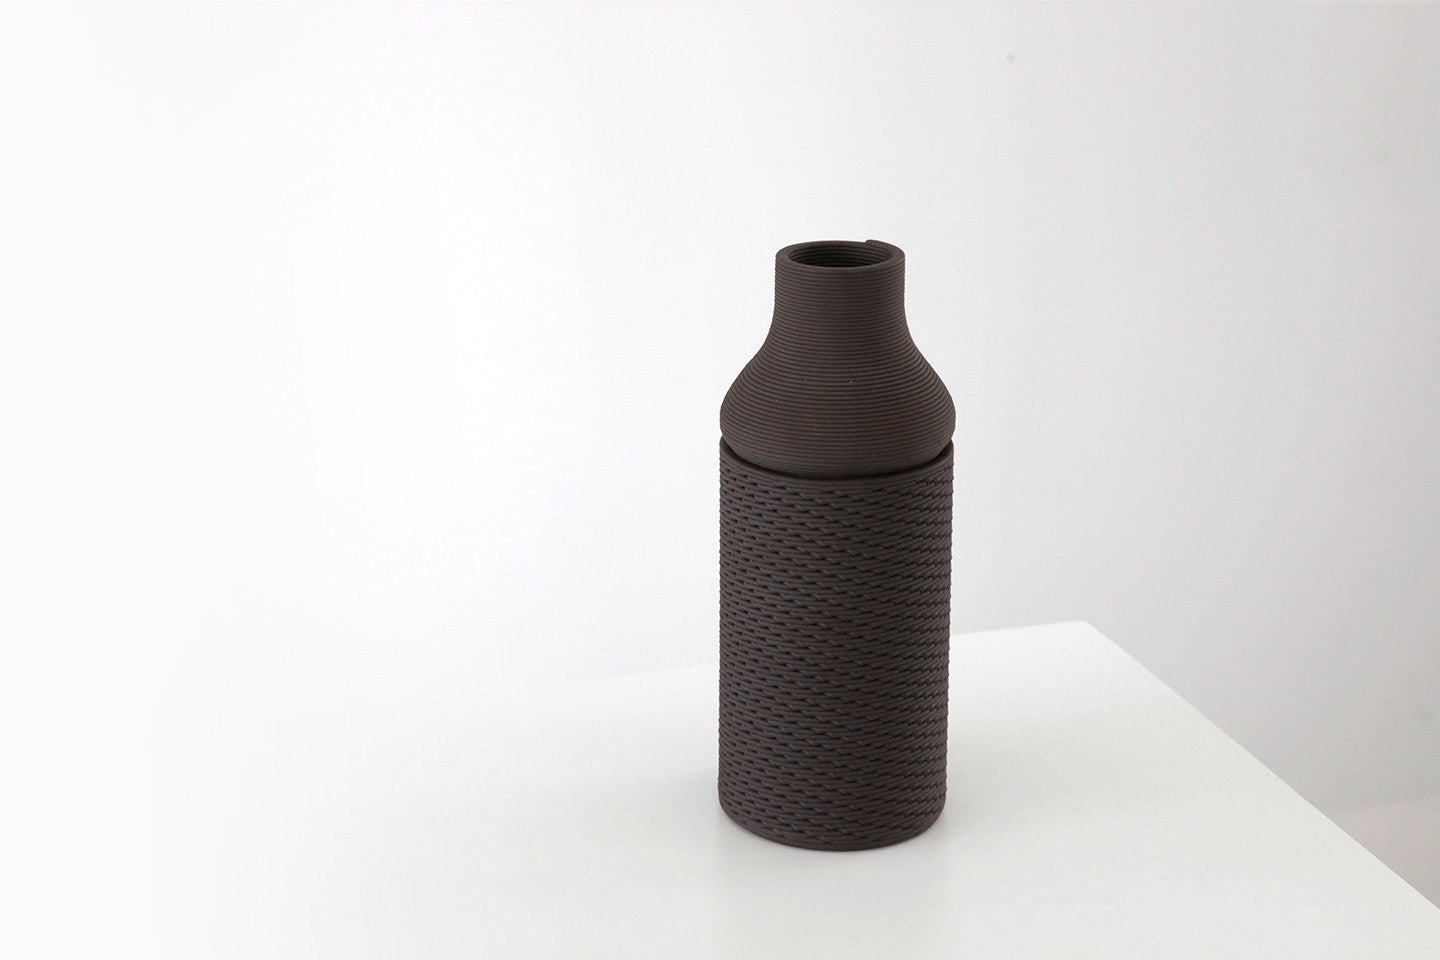 xprmnt vase set black CLOTH